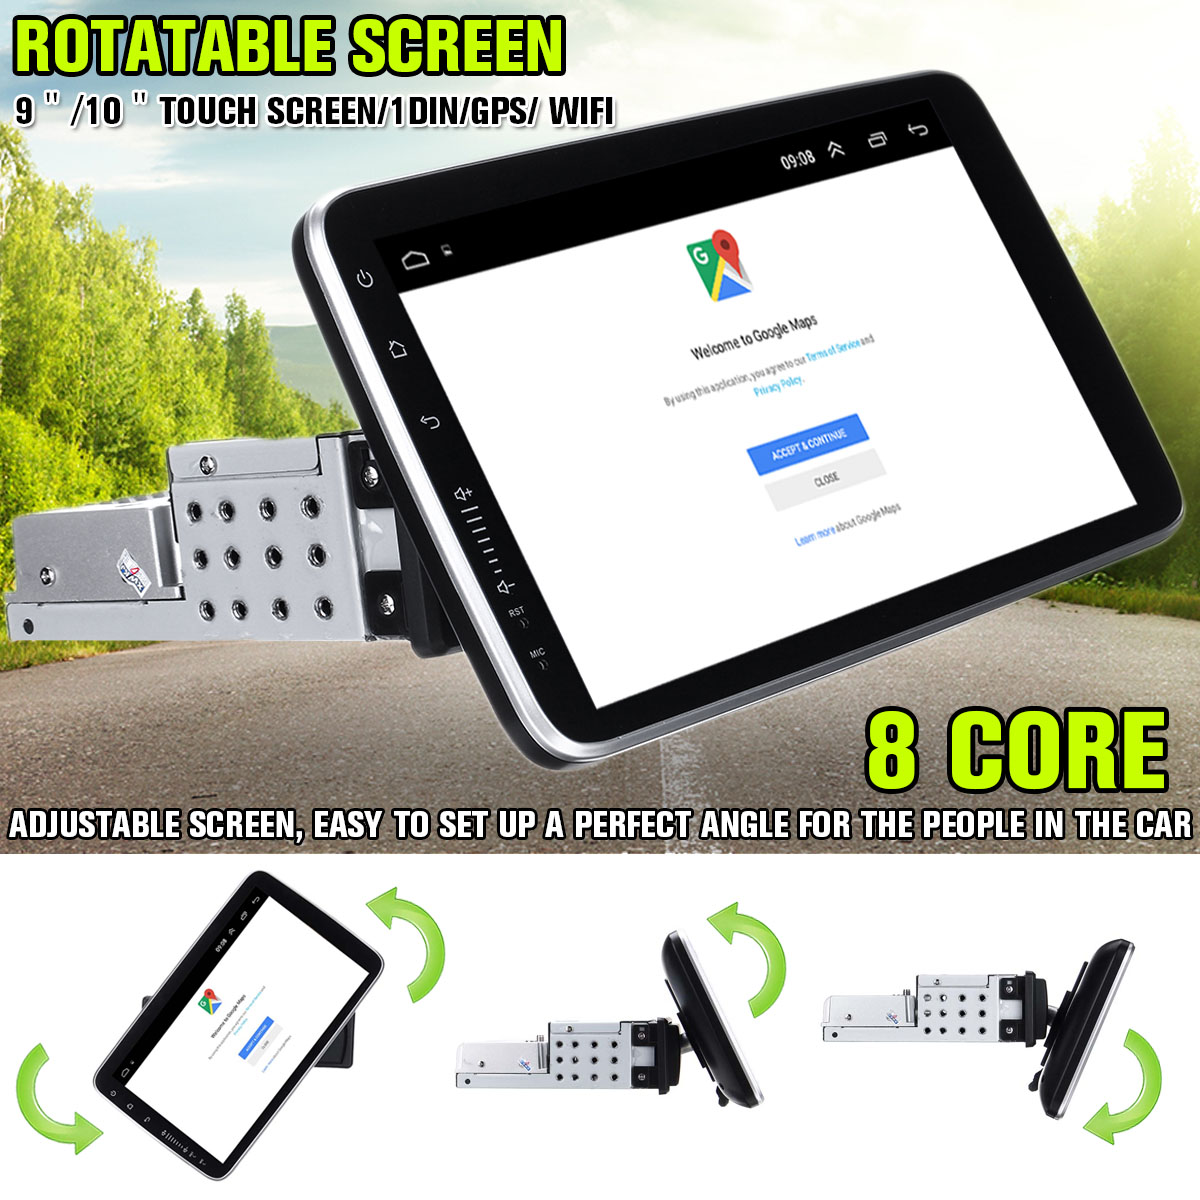 Rotatable Car Multimedia Player 16/32G 8 Core Stereo For Android 8.0/8.1 With 360 Degree Up Down Screen GPS WiFi Radio Player